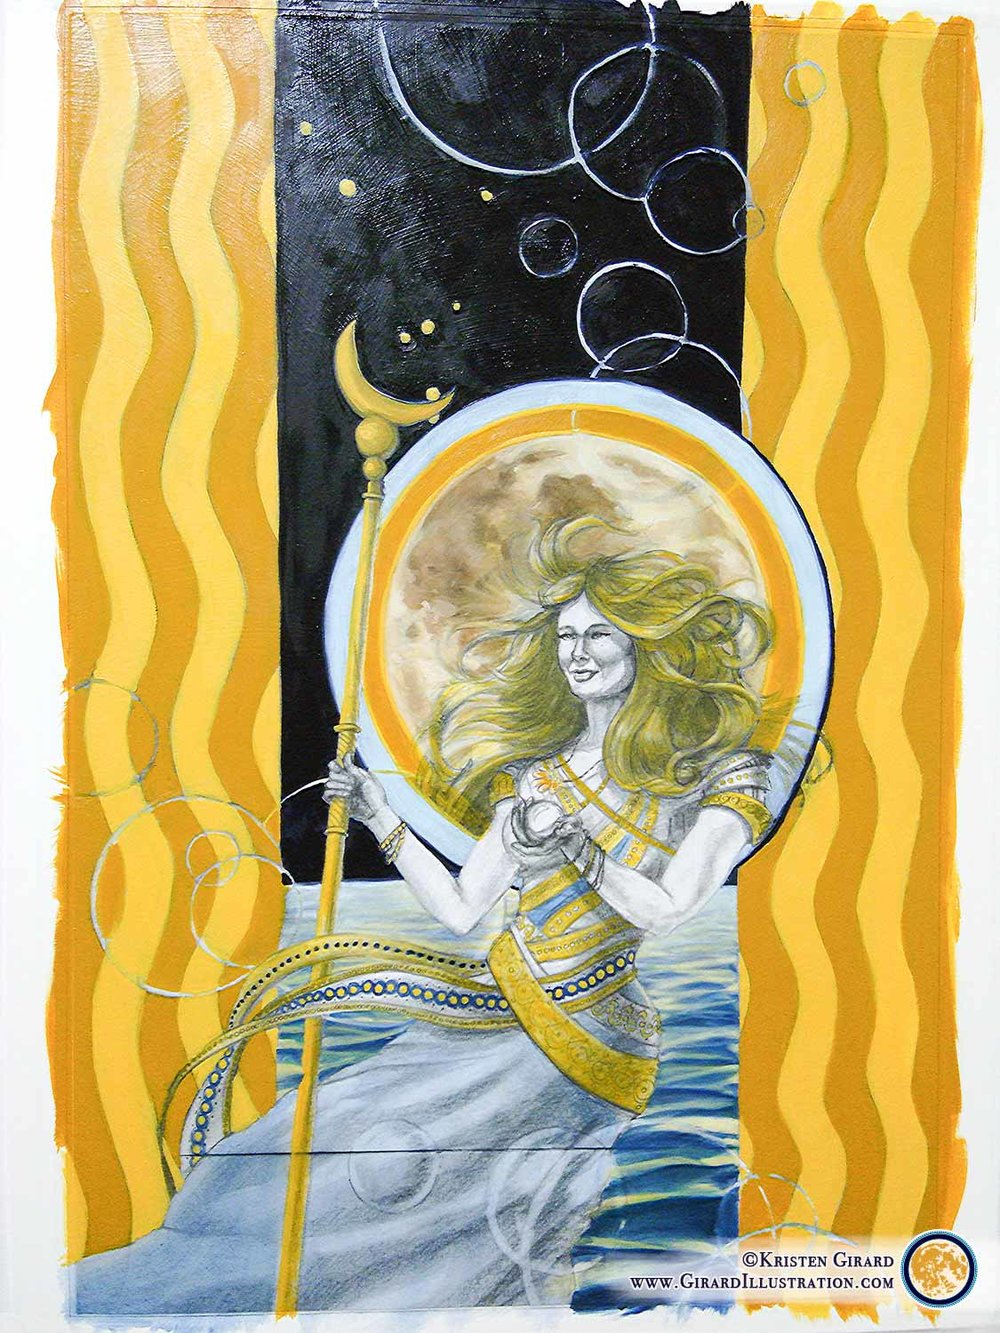 The Goddess of Air depicted here is a goddess whose main power lies in bringing dreams of inspiration and guidance into the world. To see the finished painting of Air Magic in the Natural Magic Collection click here. © Kristen Girard